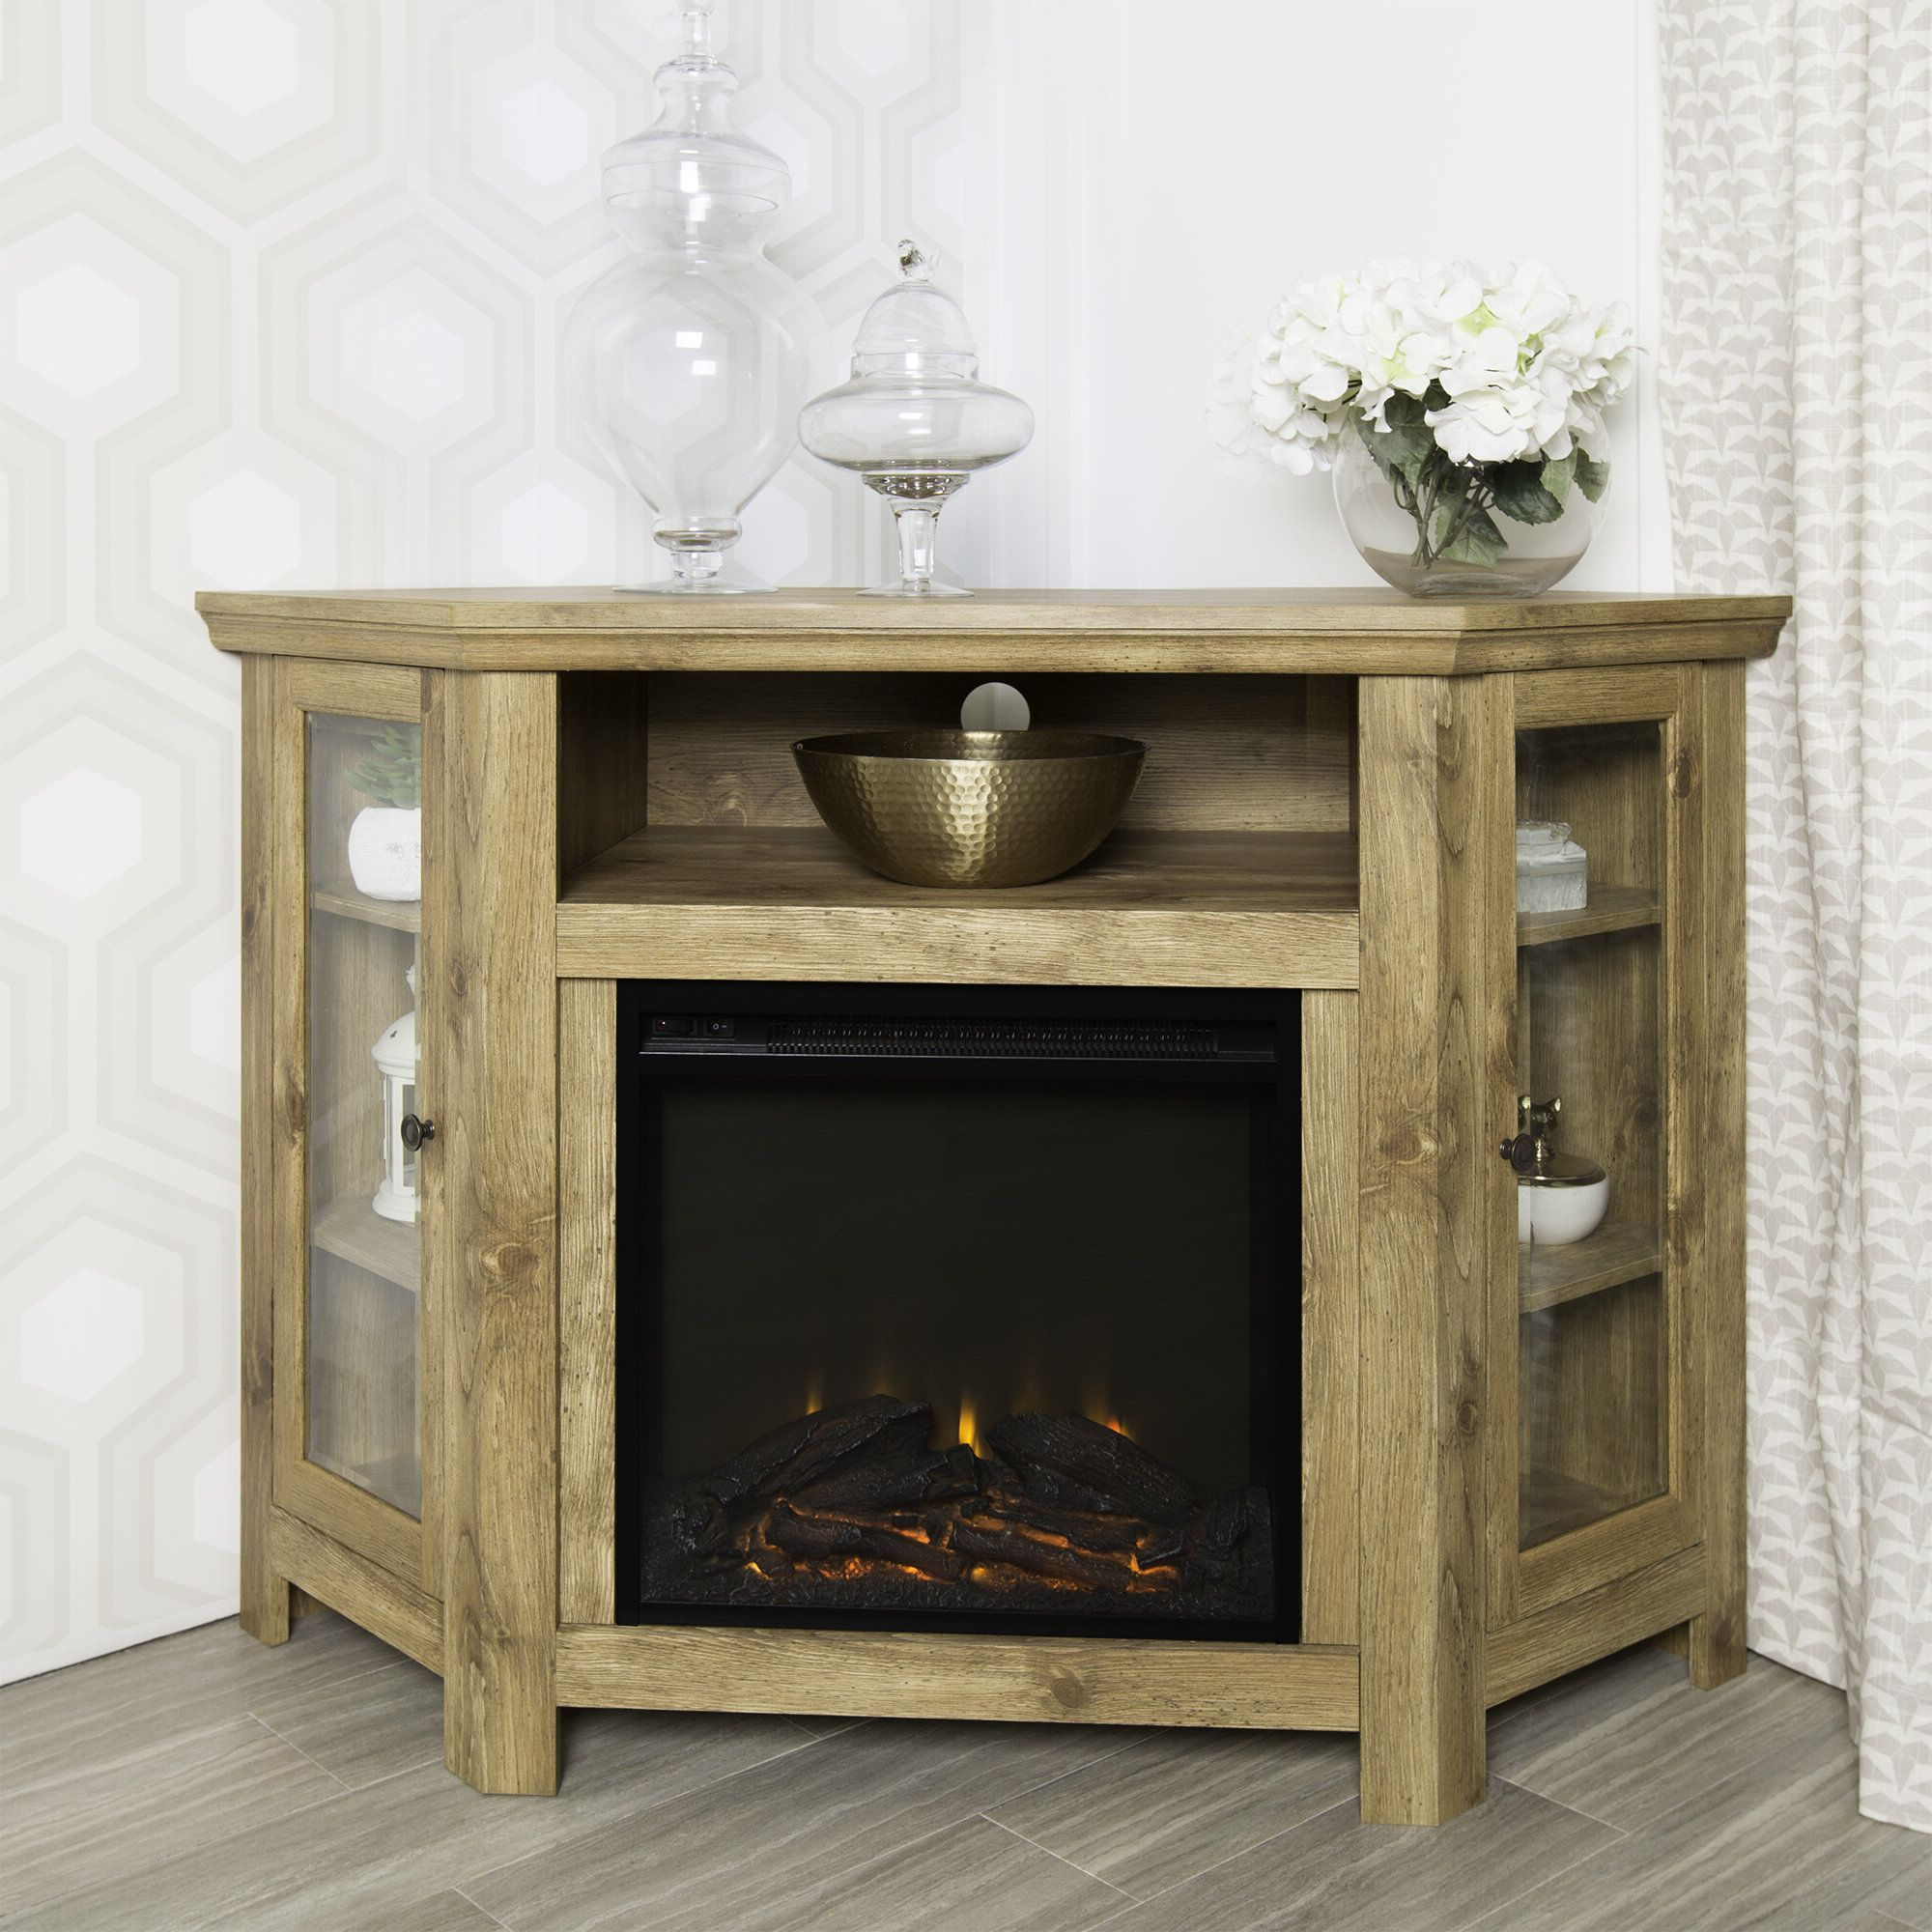 """Tieton Corner Tv Stand For Tvs Up To 50"""" With Electric Within Neilsen Tv Stands For Tvs Up To 50"""" With Fireplace Included (View 17 of 20)"""